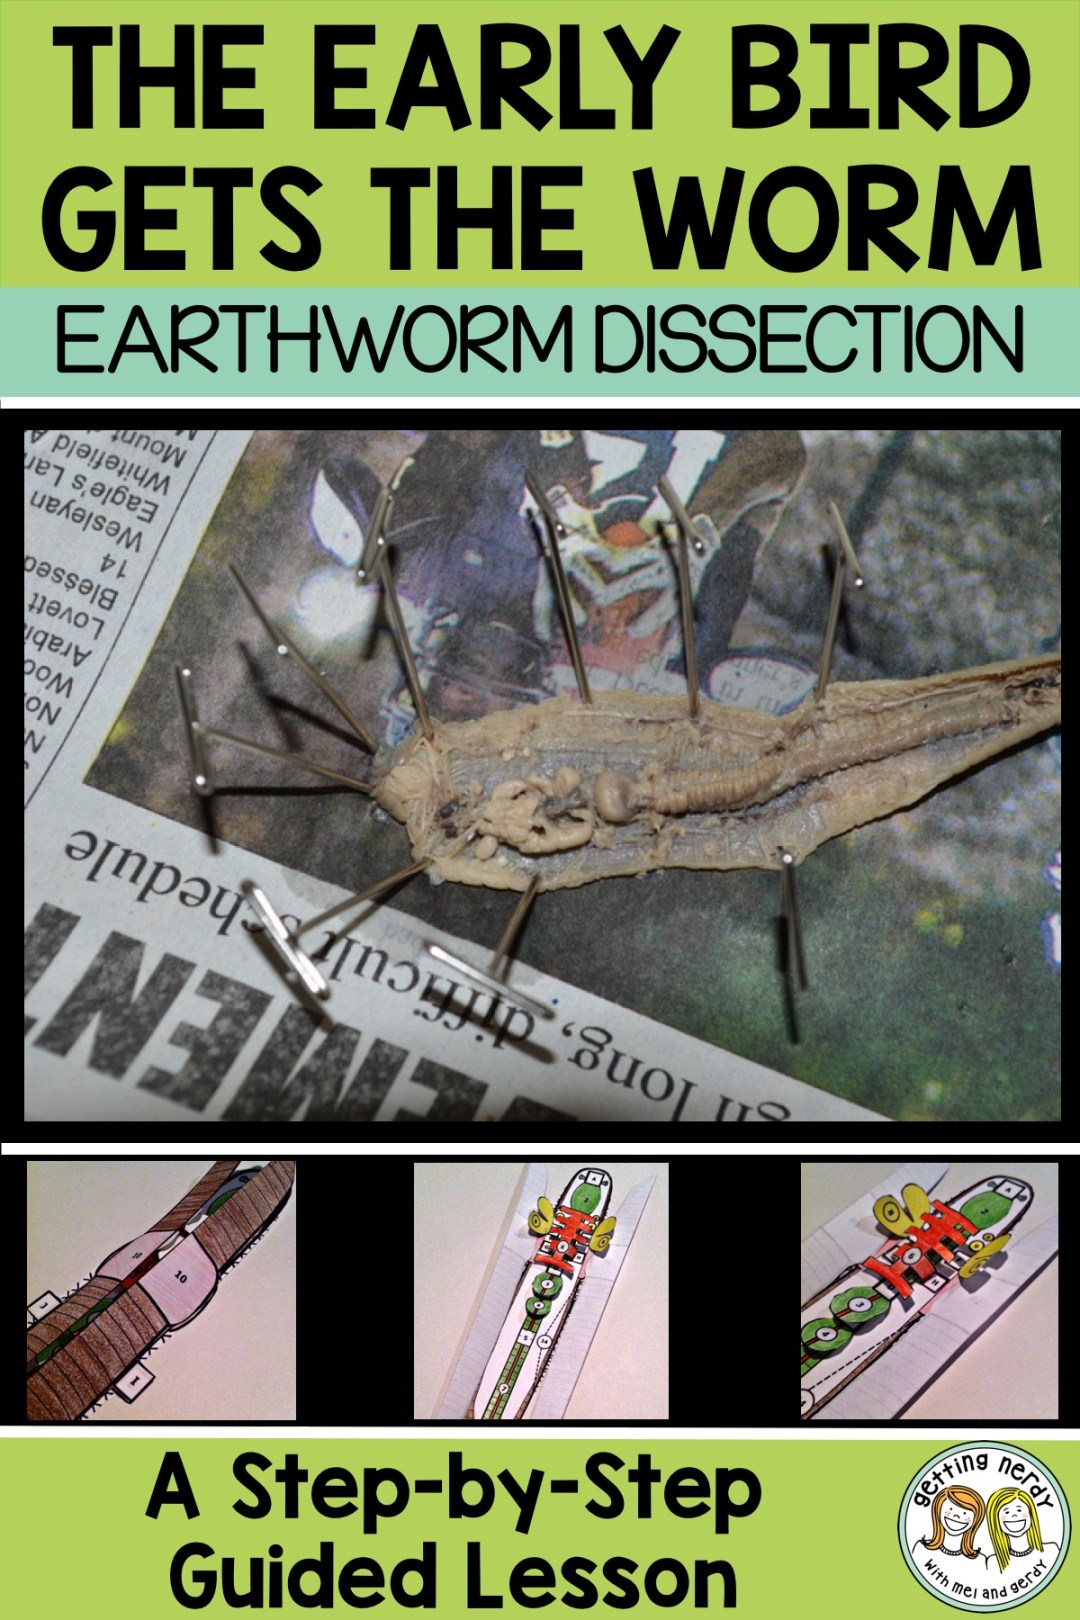 Love these labs tips for a worry free earthworm dissection! - Getting Nerdy Science #gettingnerdyscience #earthwormdissection #dissection